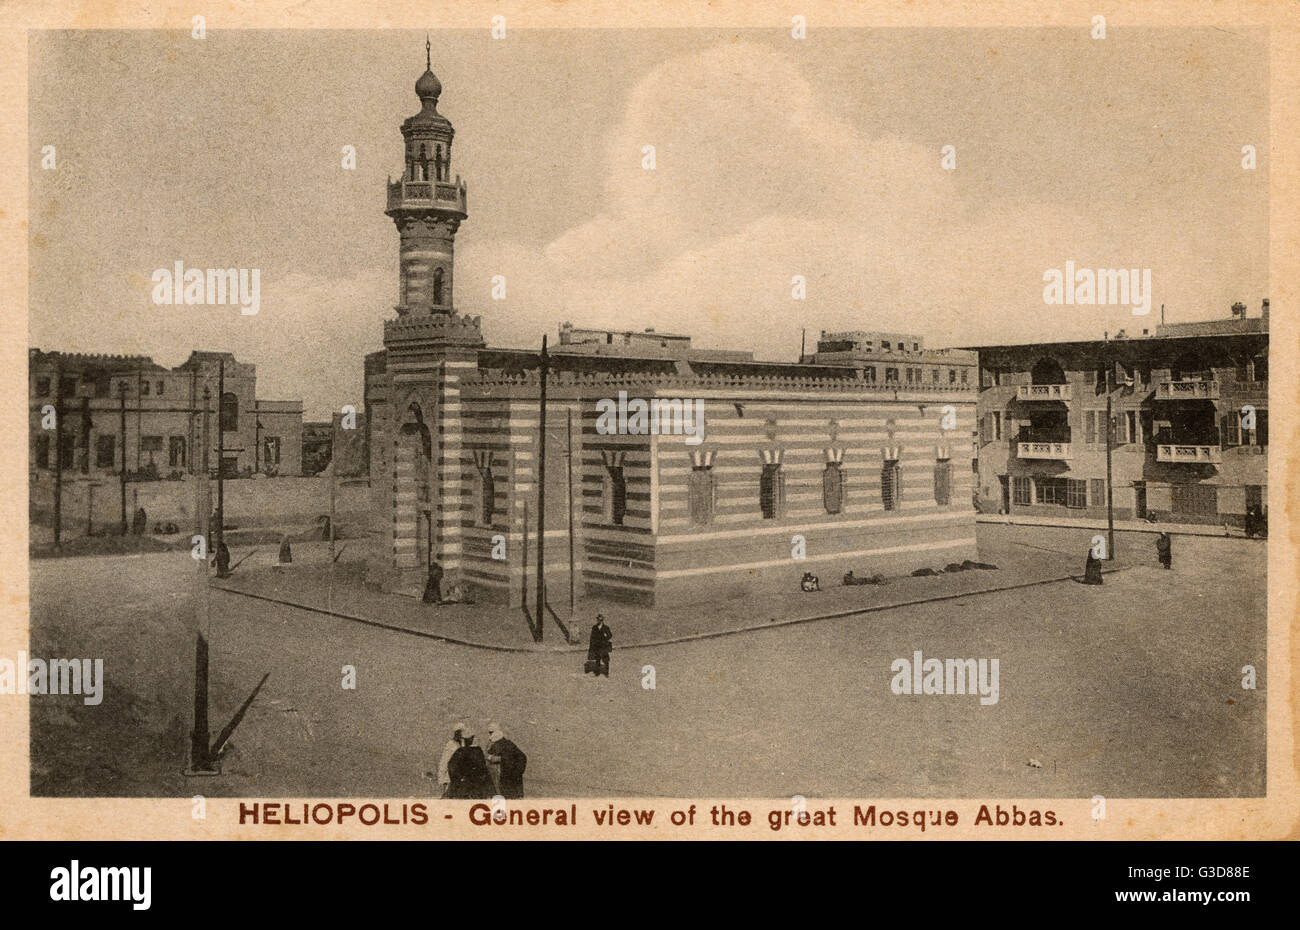 Al-Gamea (The Mosque) in Al-Gamea Square, Heliopolis - a suburb outside Cairo, Egypt, which has since merged with - Stock Image